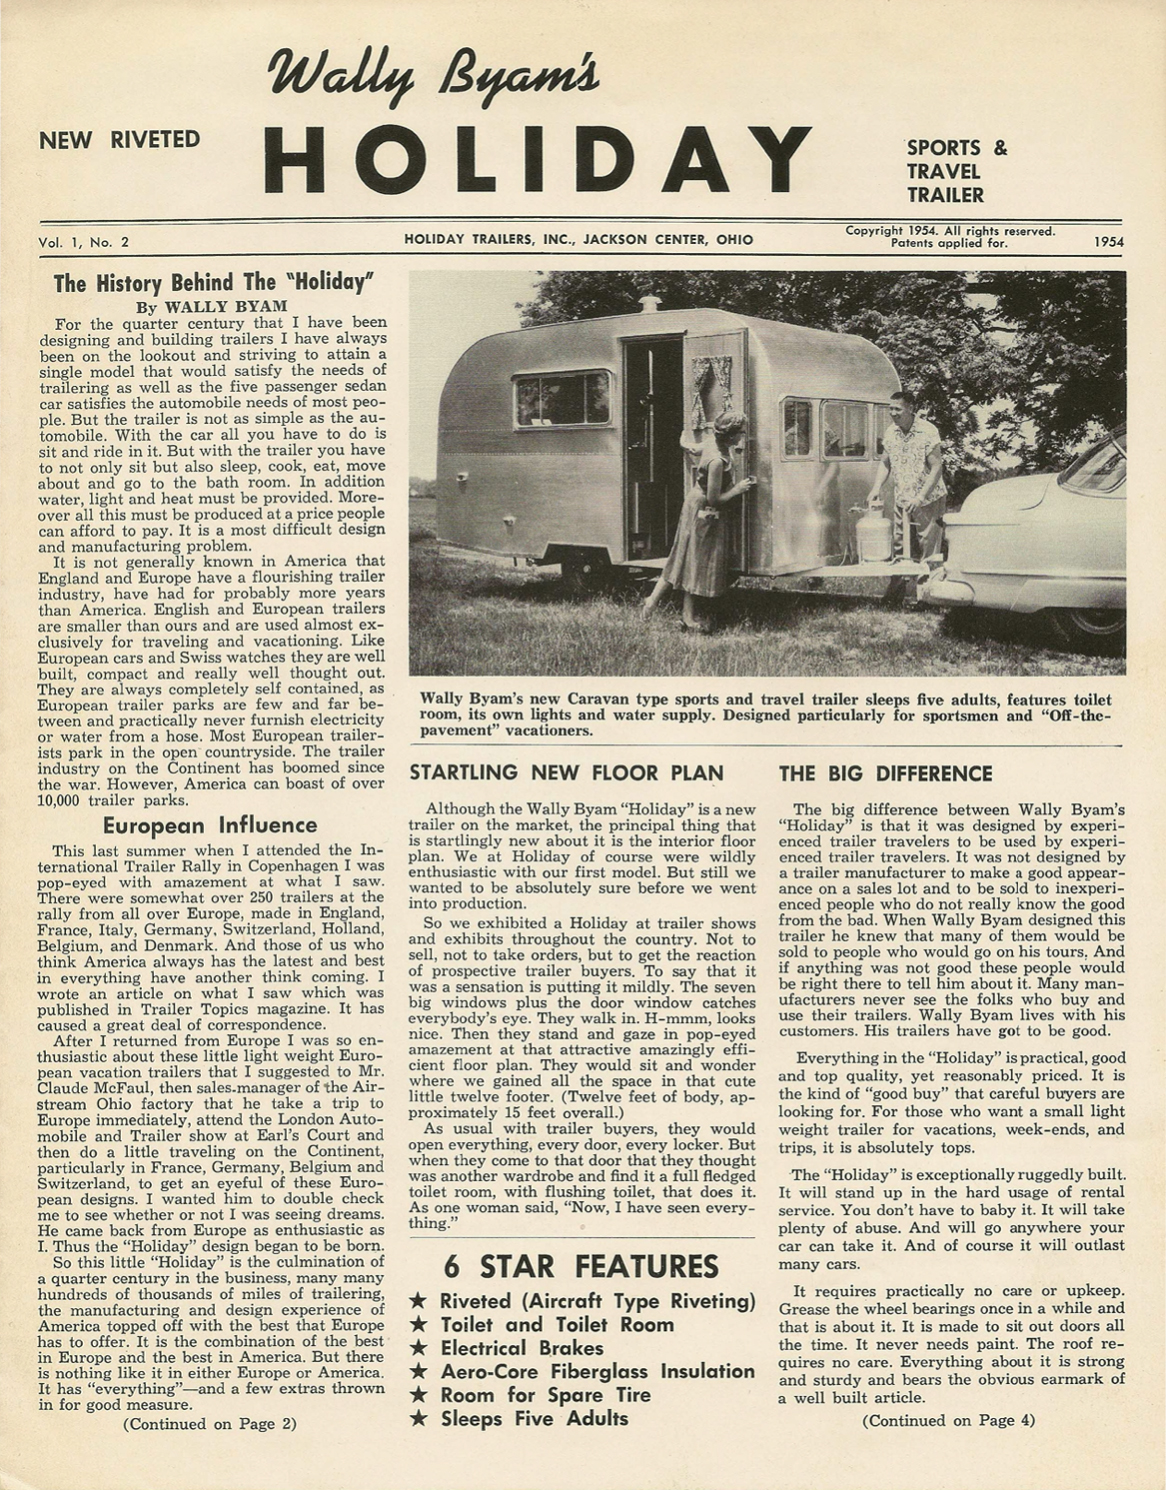 Wally-Byam's-Holiday-Trailer-Heritage-Document